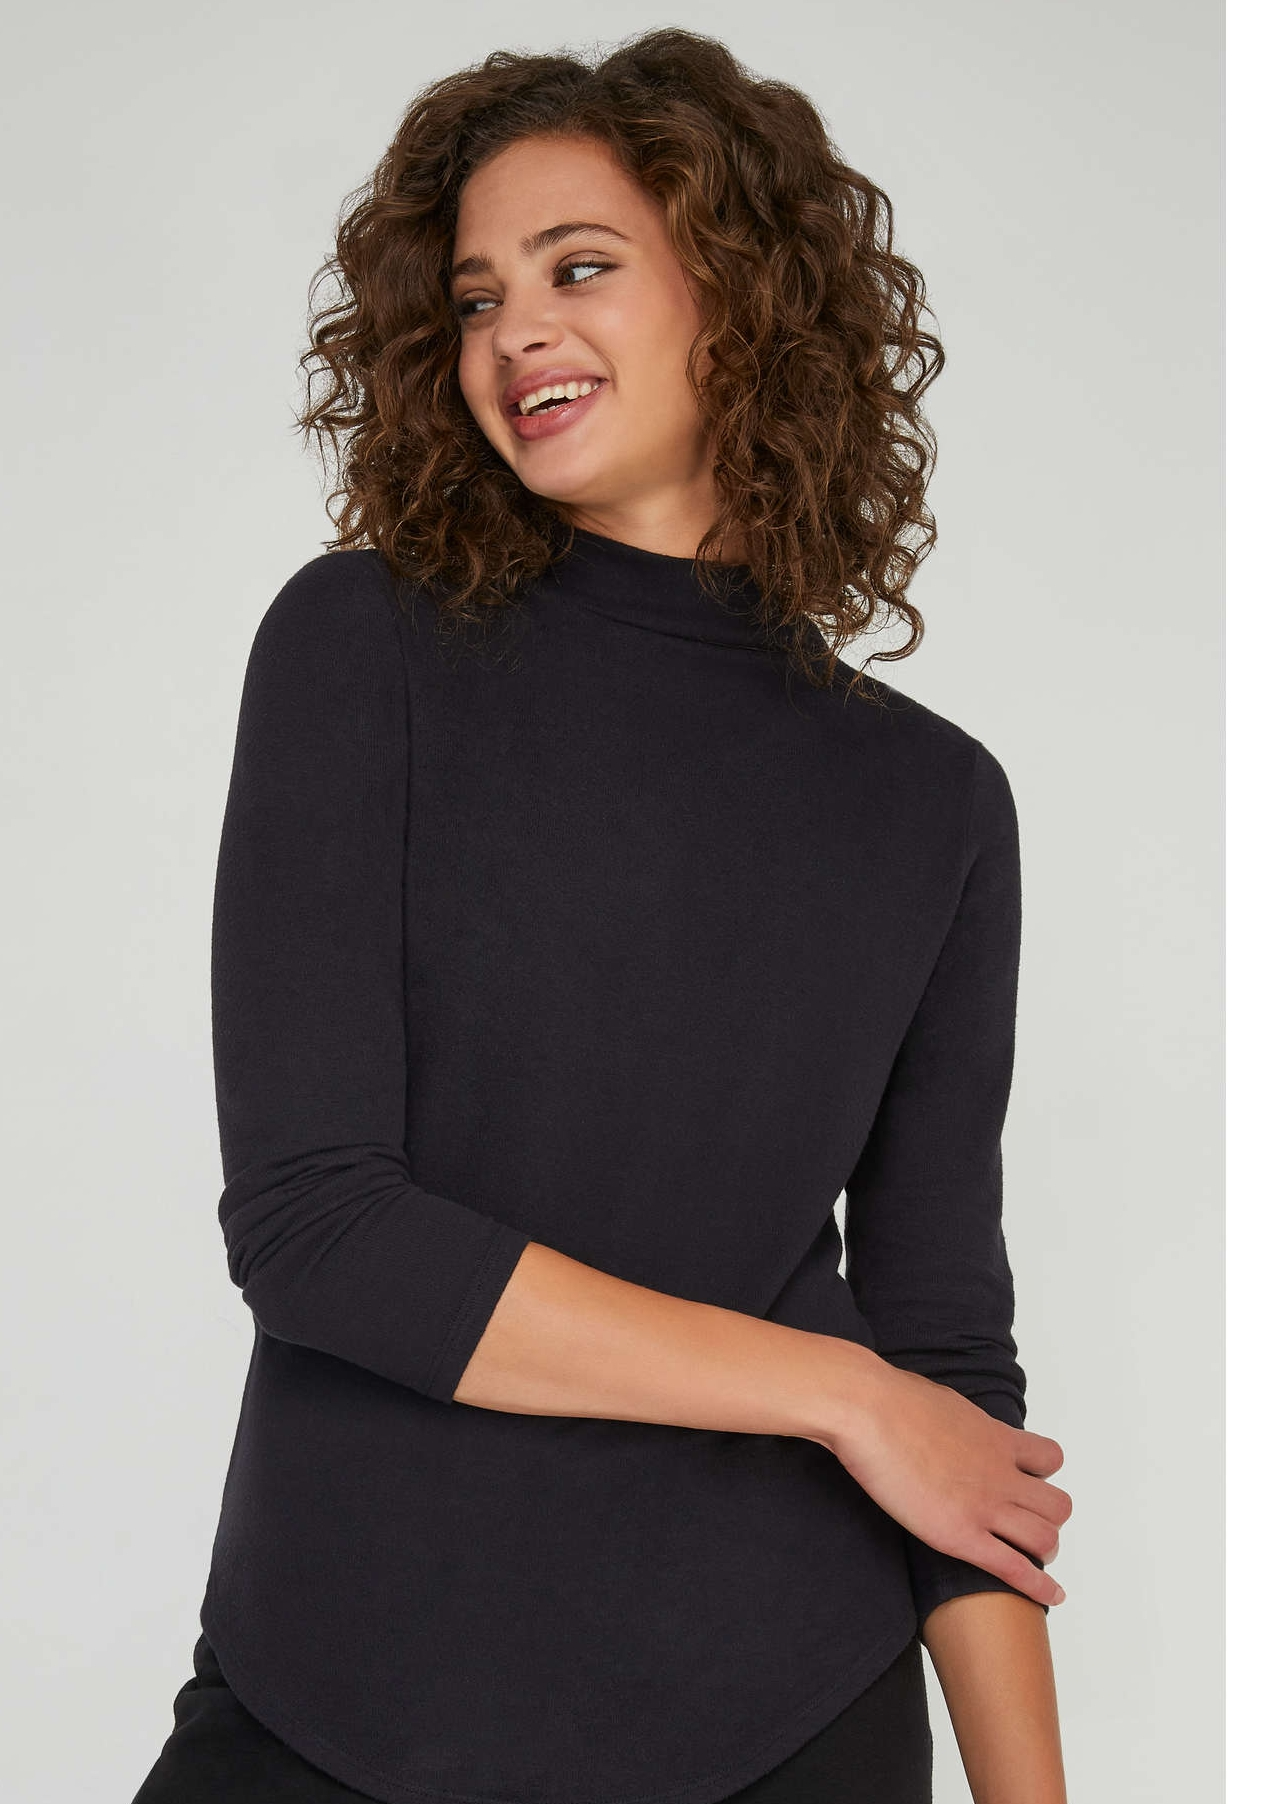 Basic long sleeve cotton turtle neck from Joe Fresh. This top goes for $24